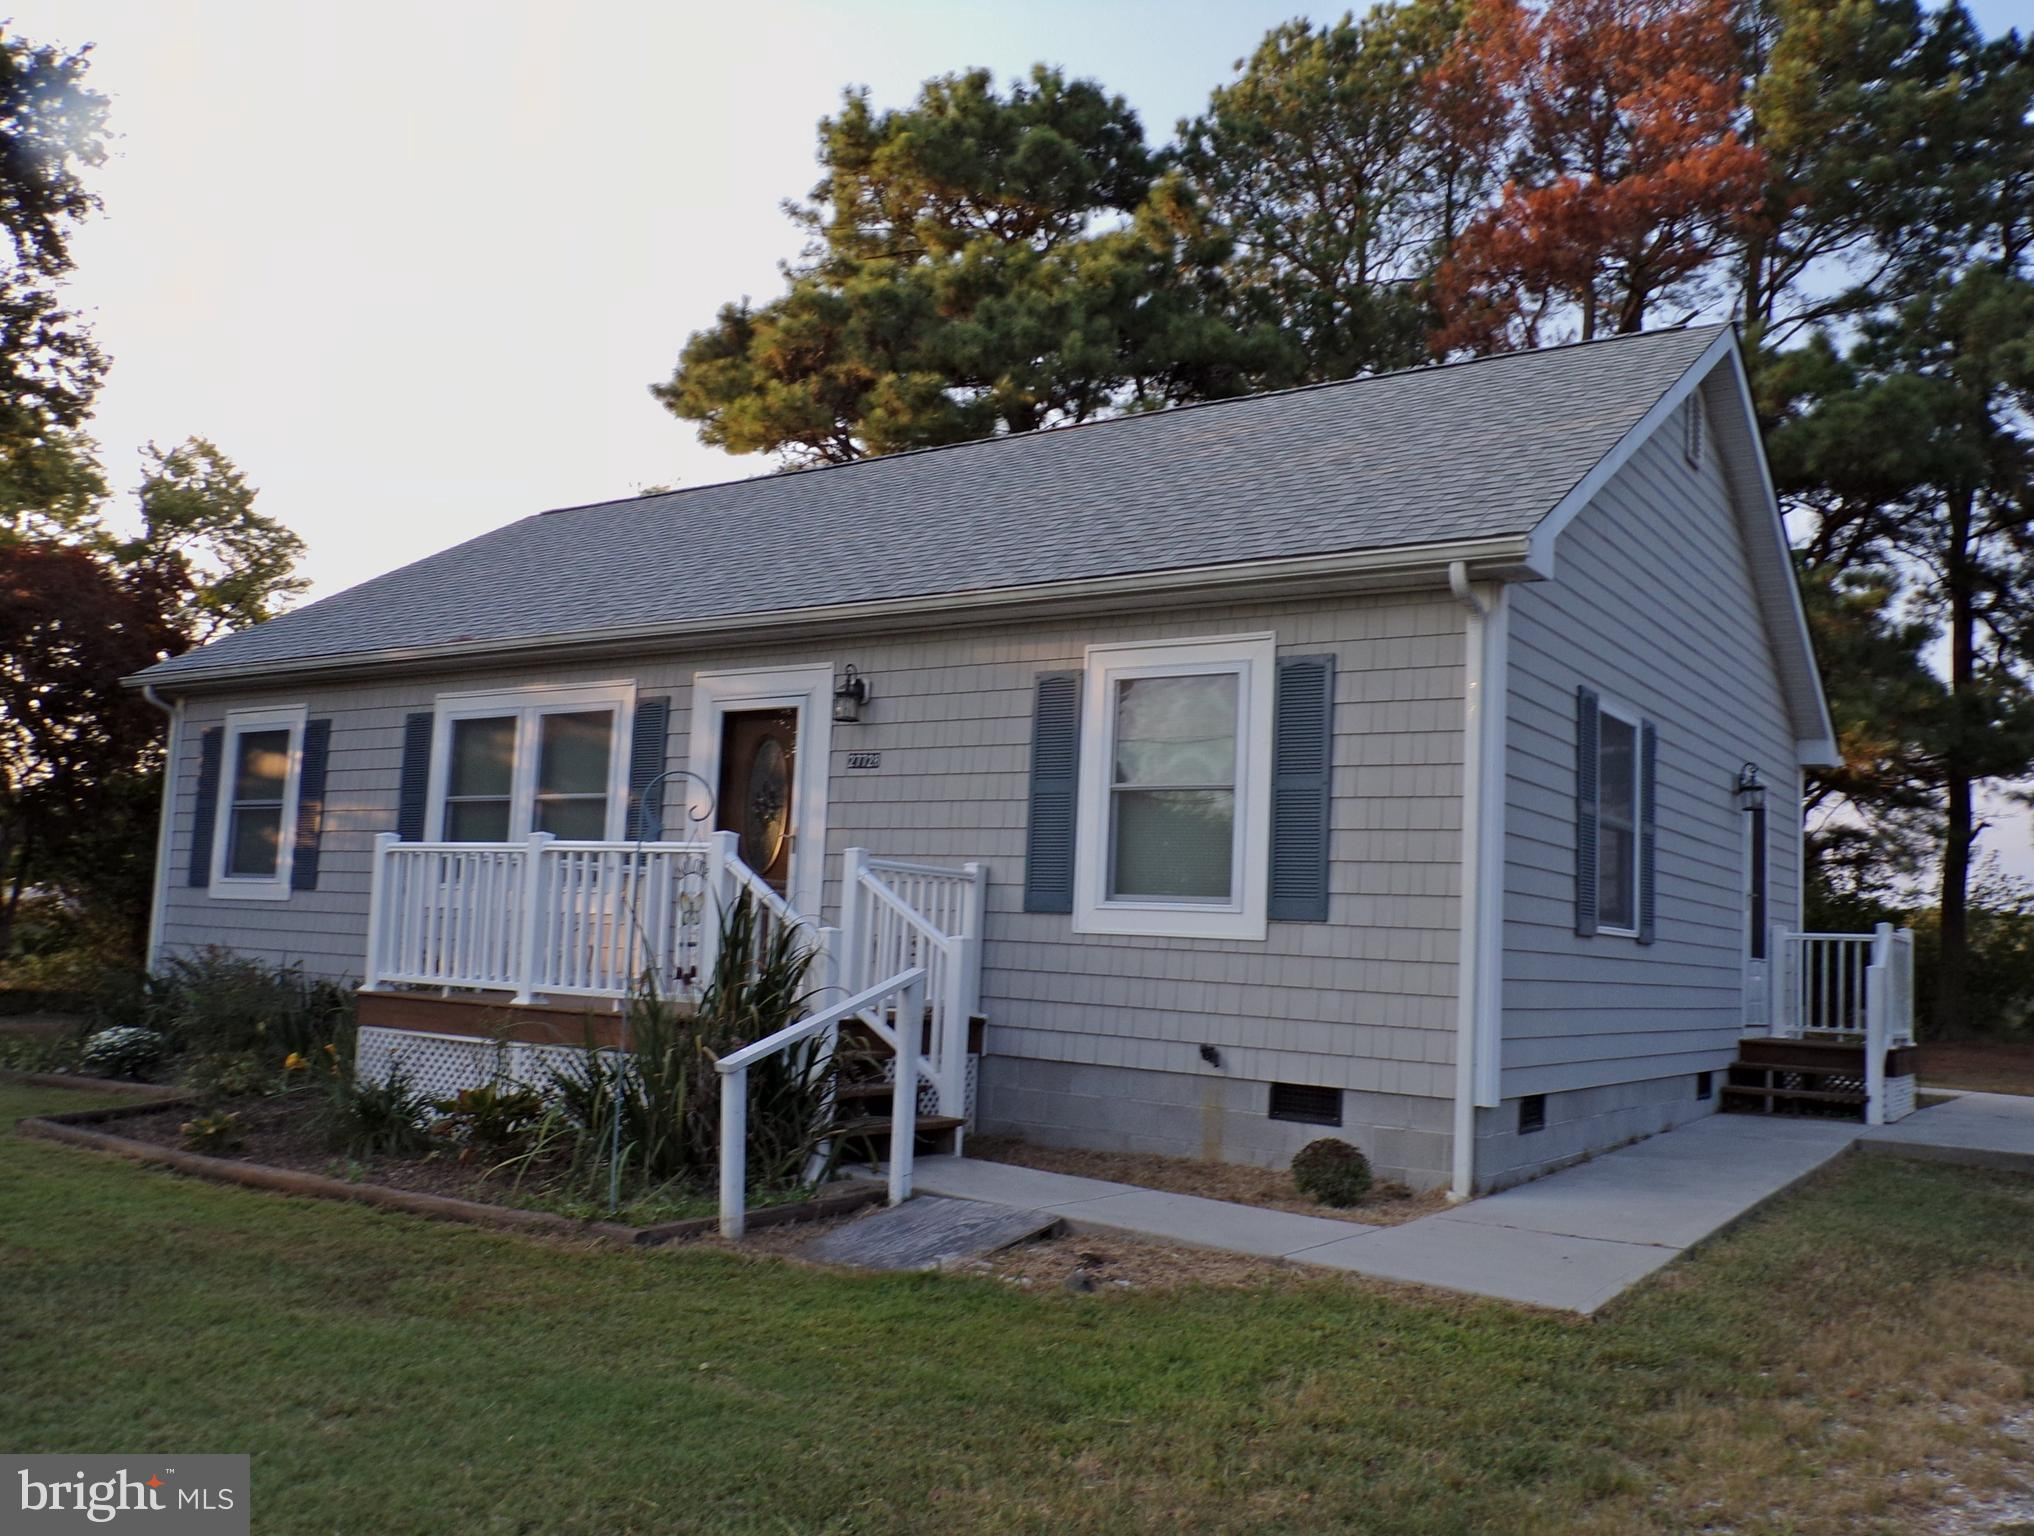 3 years young and gently used country home on 1/2 acre--4 miles to Princess Anne, MD--Seller in            process of moving out -new pics are coming of home all empty, professionally cleaned and ready     for a new family.  Call your Agent today because      this is not going to last long.